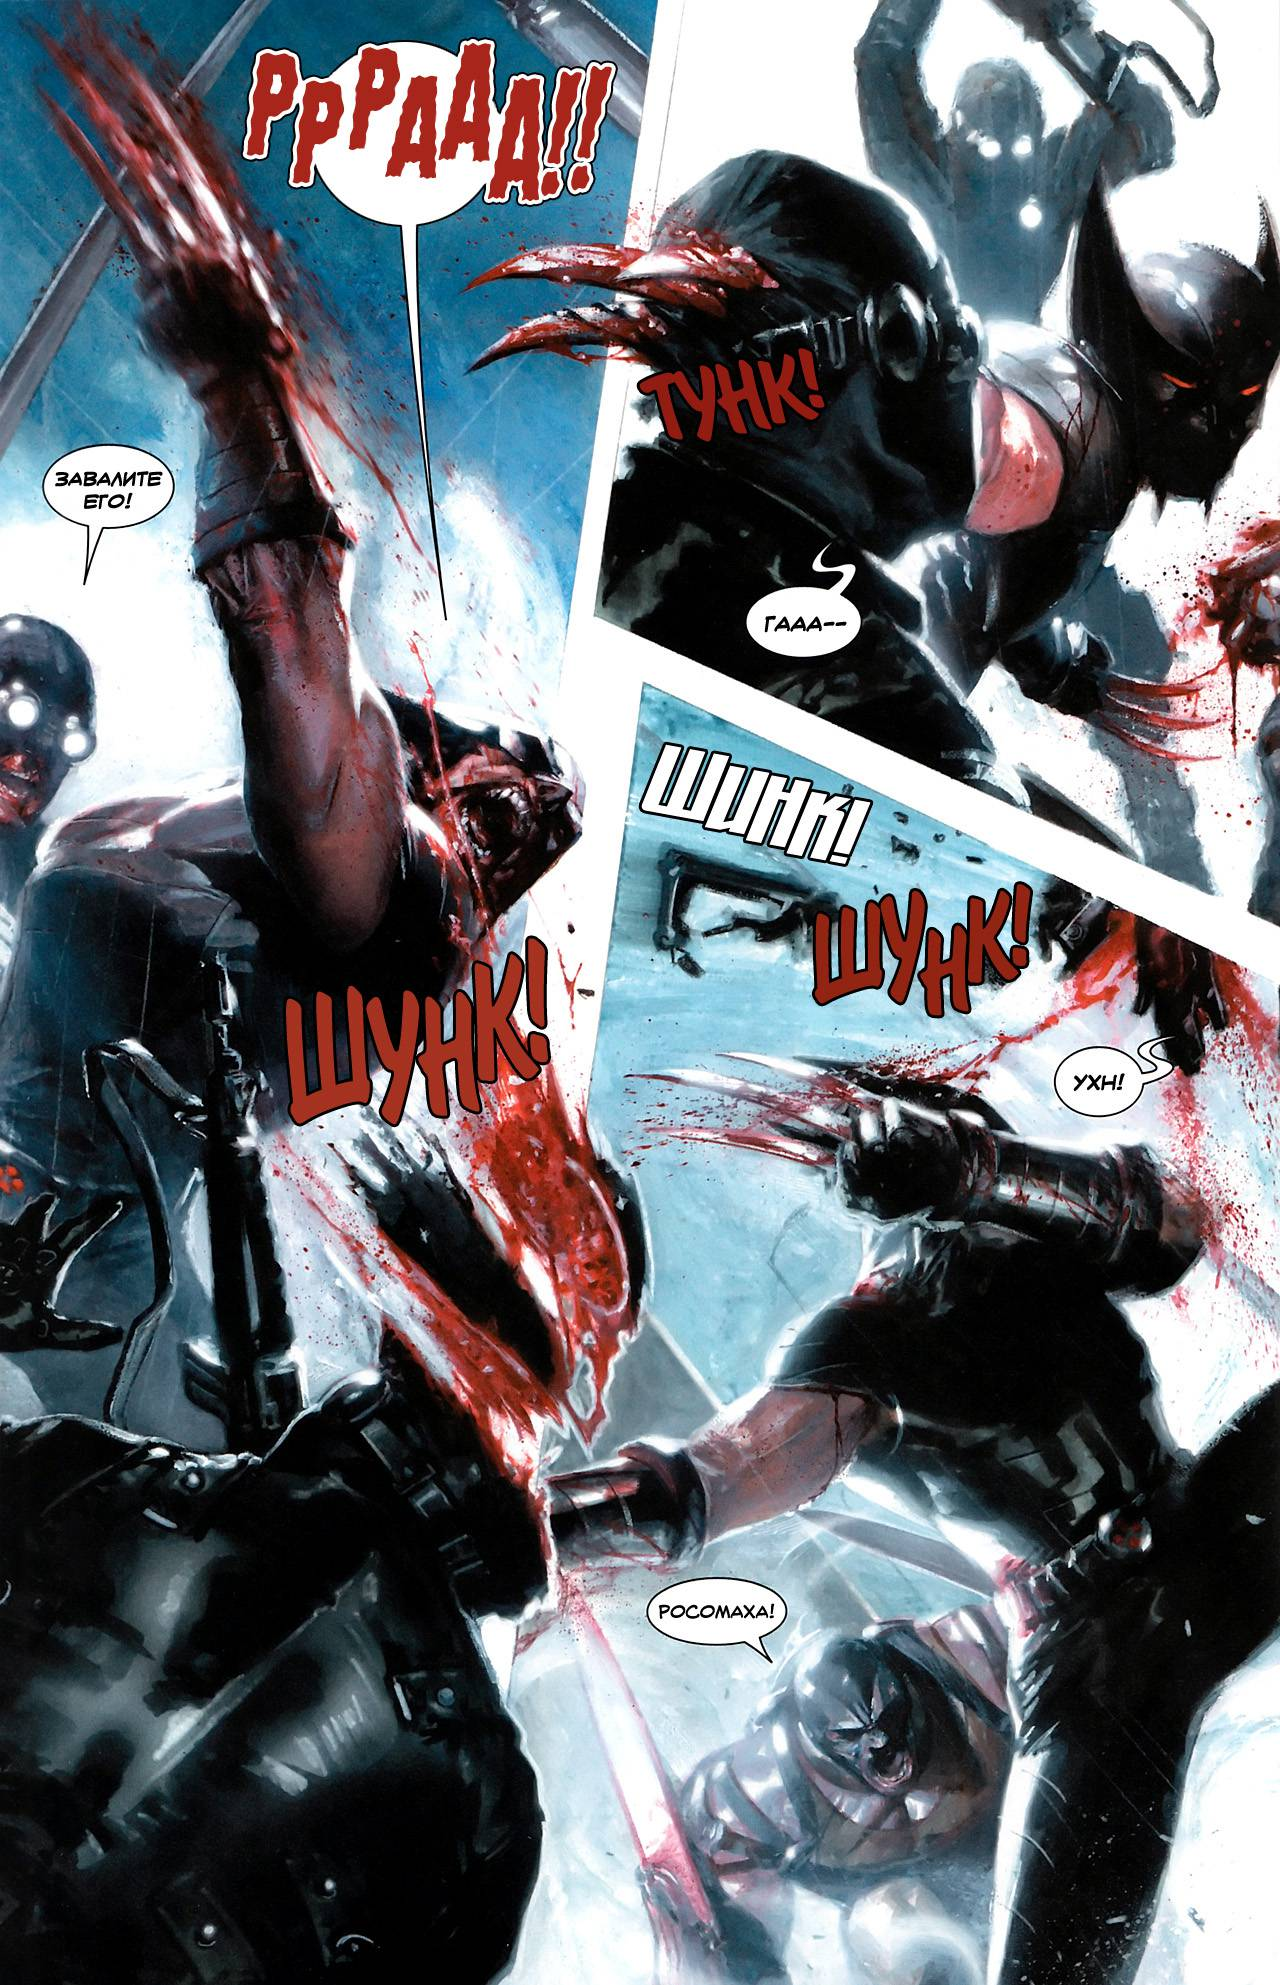 X force sex and violence pic 59